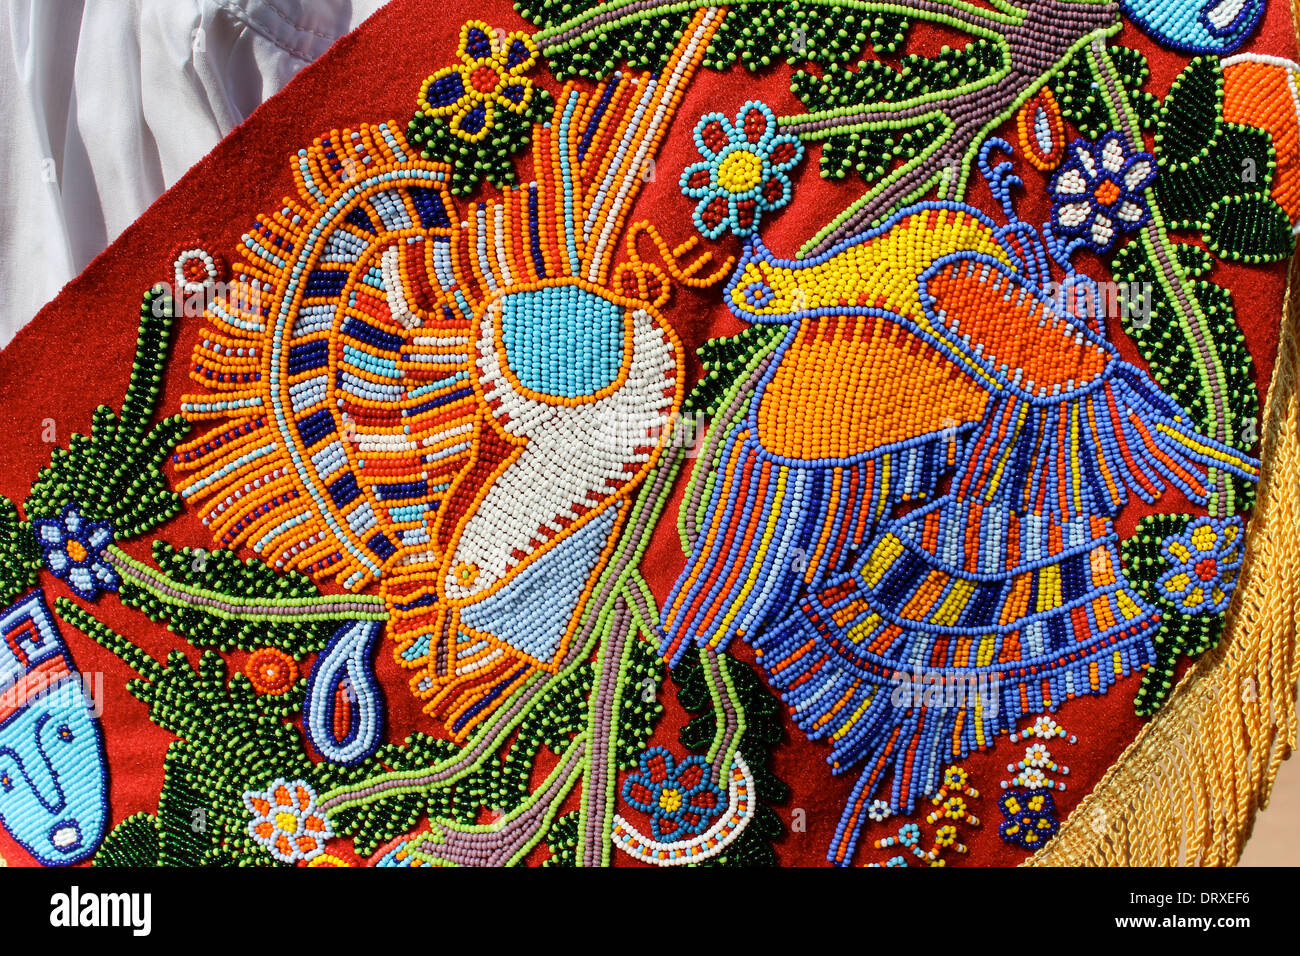 Detail of beaded work on the cape of a Volador de Papantla (Flying Men of Papantla), Mexico - Stock Image